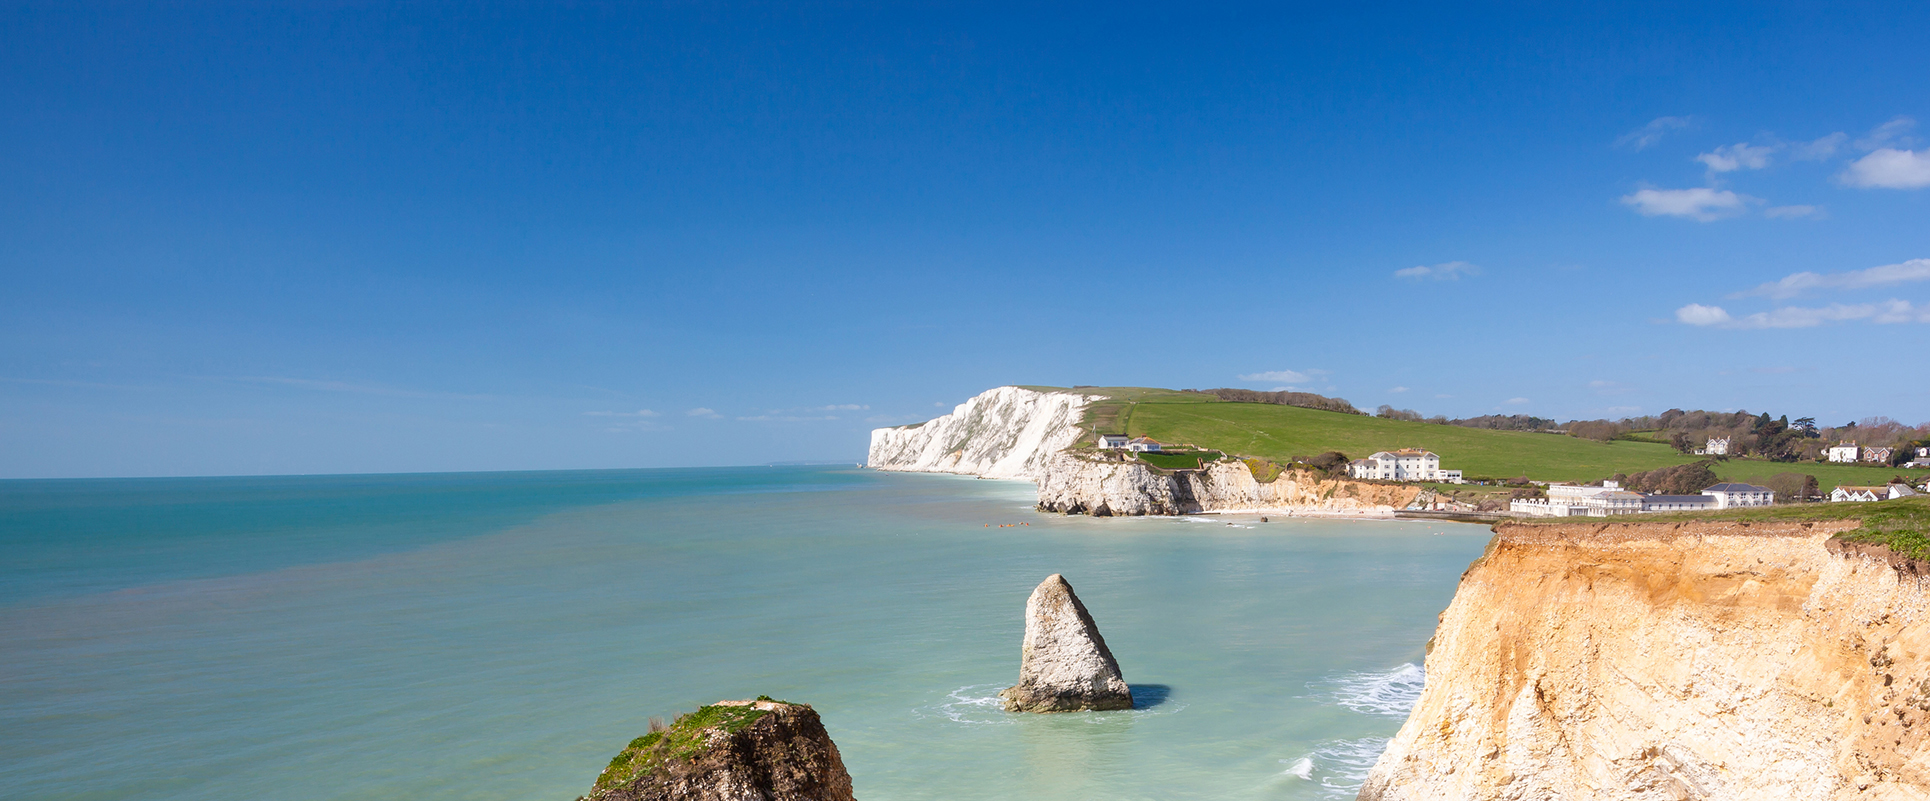 Revitalise excursion Isle of Wight